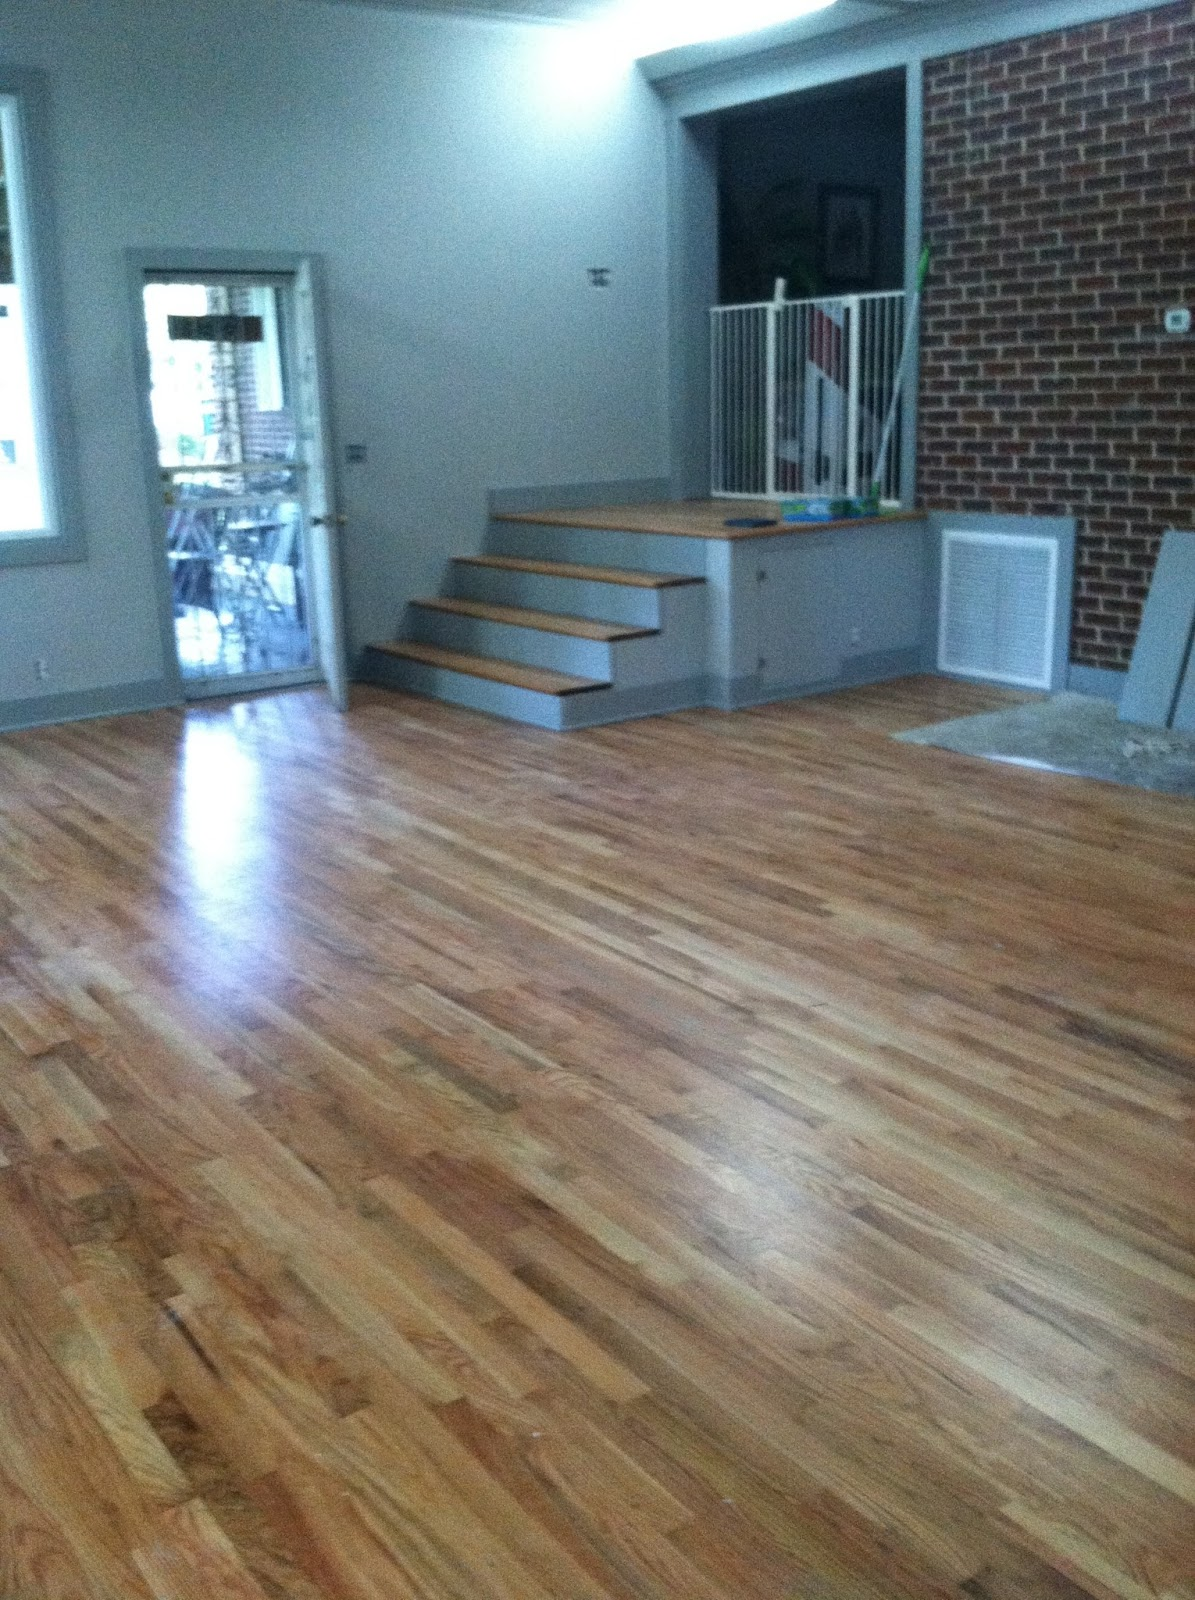 Country flooring direct sand and finish red oak installed for Hill country flooring